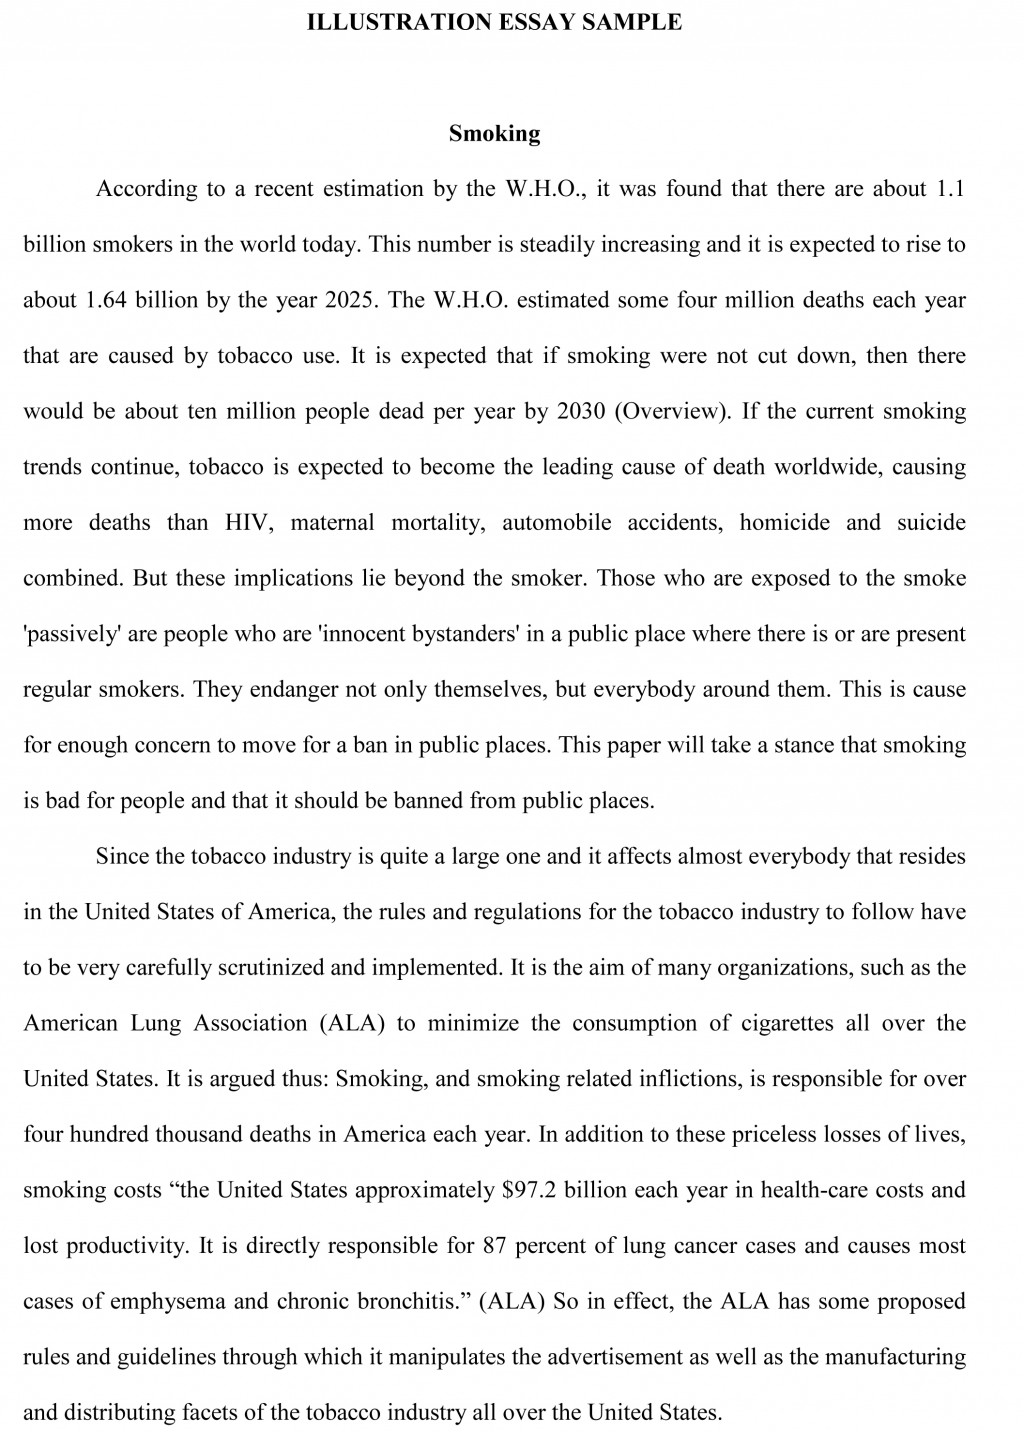 001 Illustration Essay Sample Example Free Archaicawful Write Writing Prompts Examples Website To Essays Large